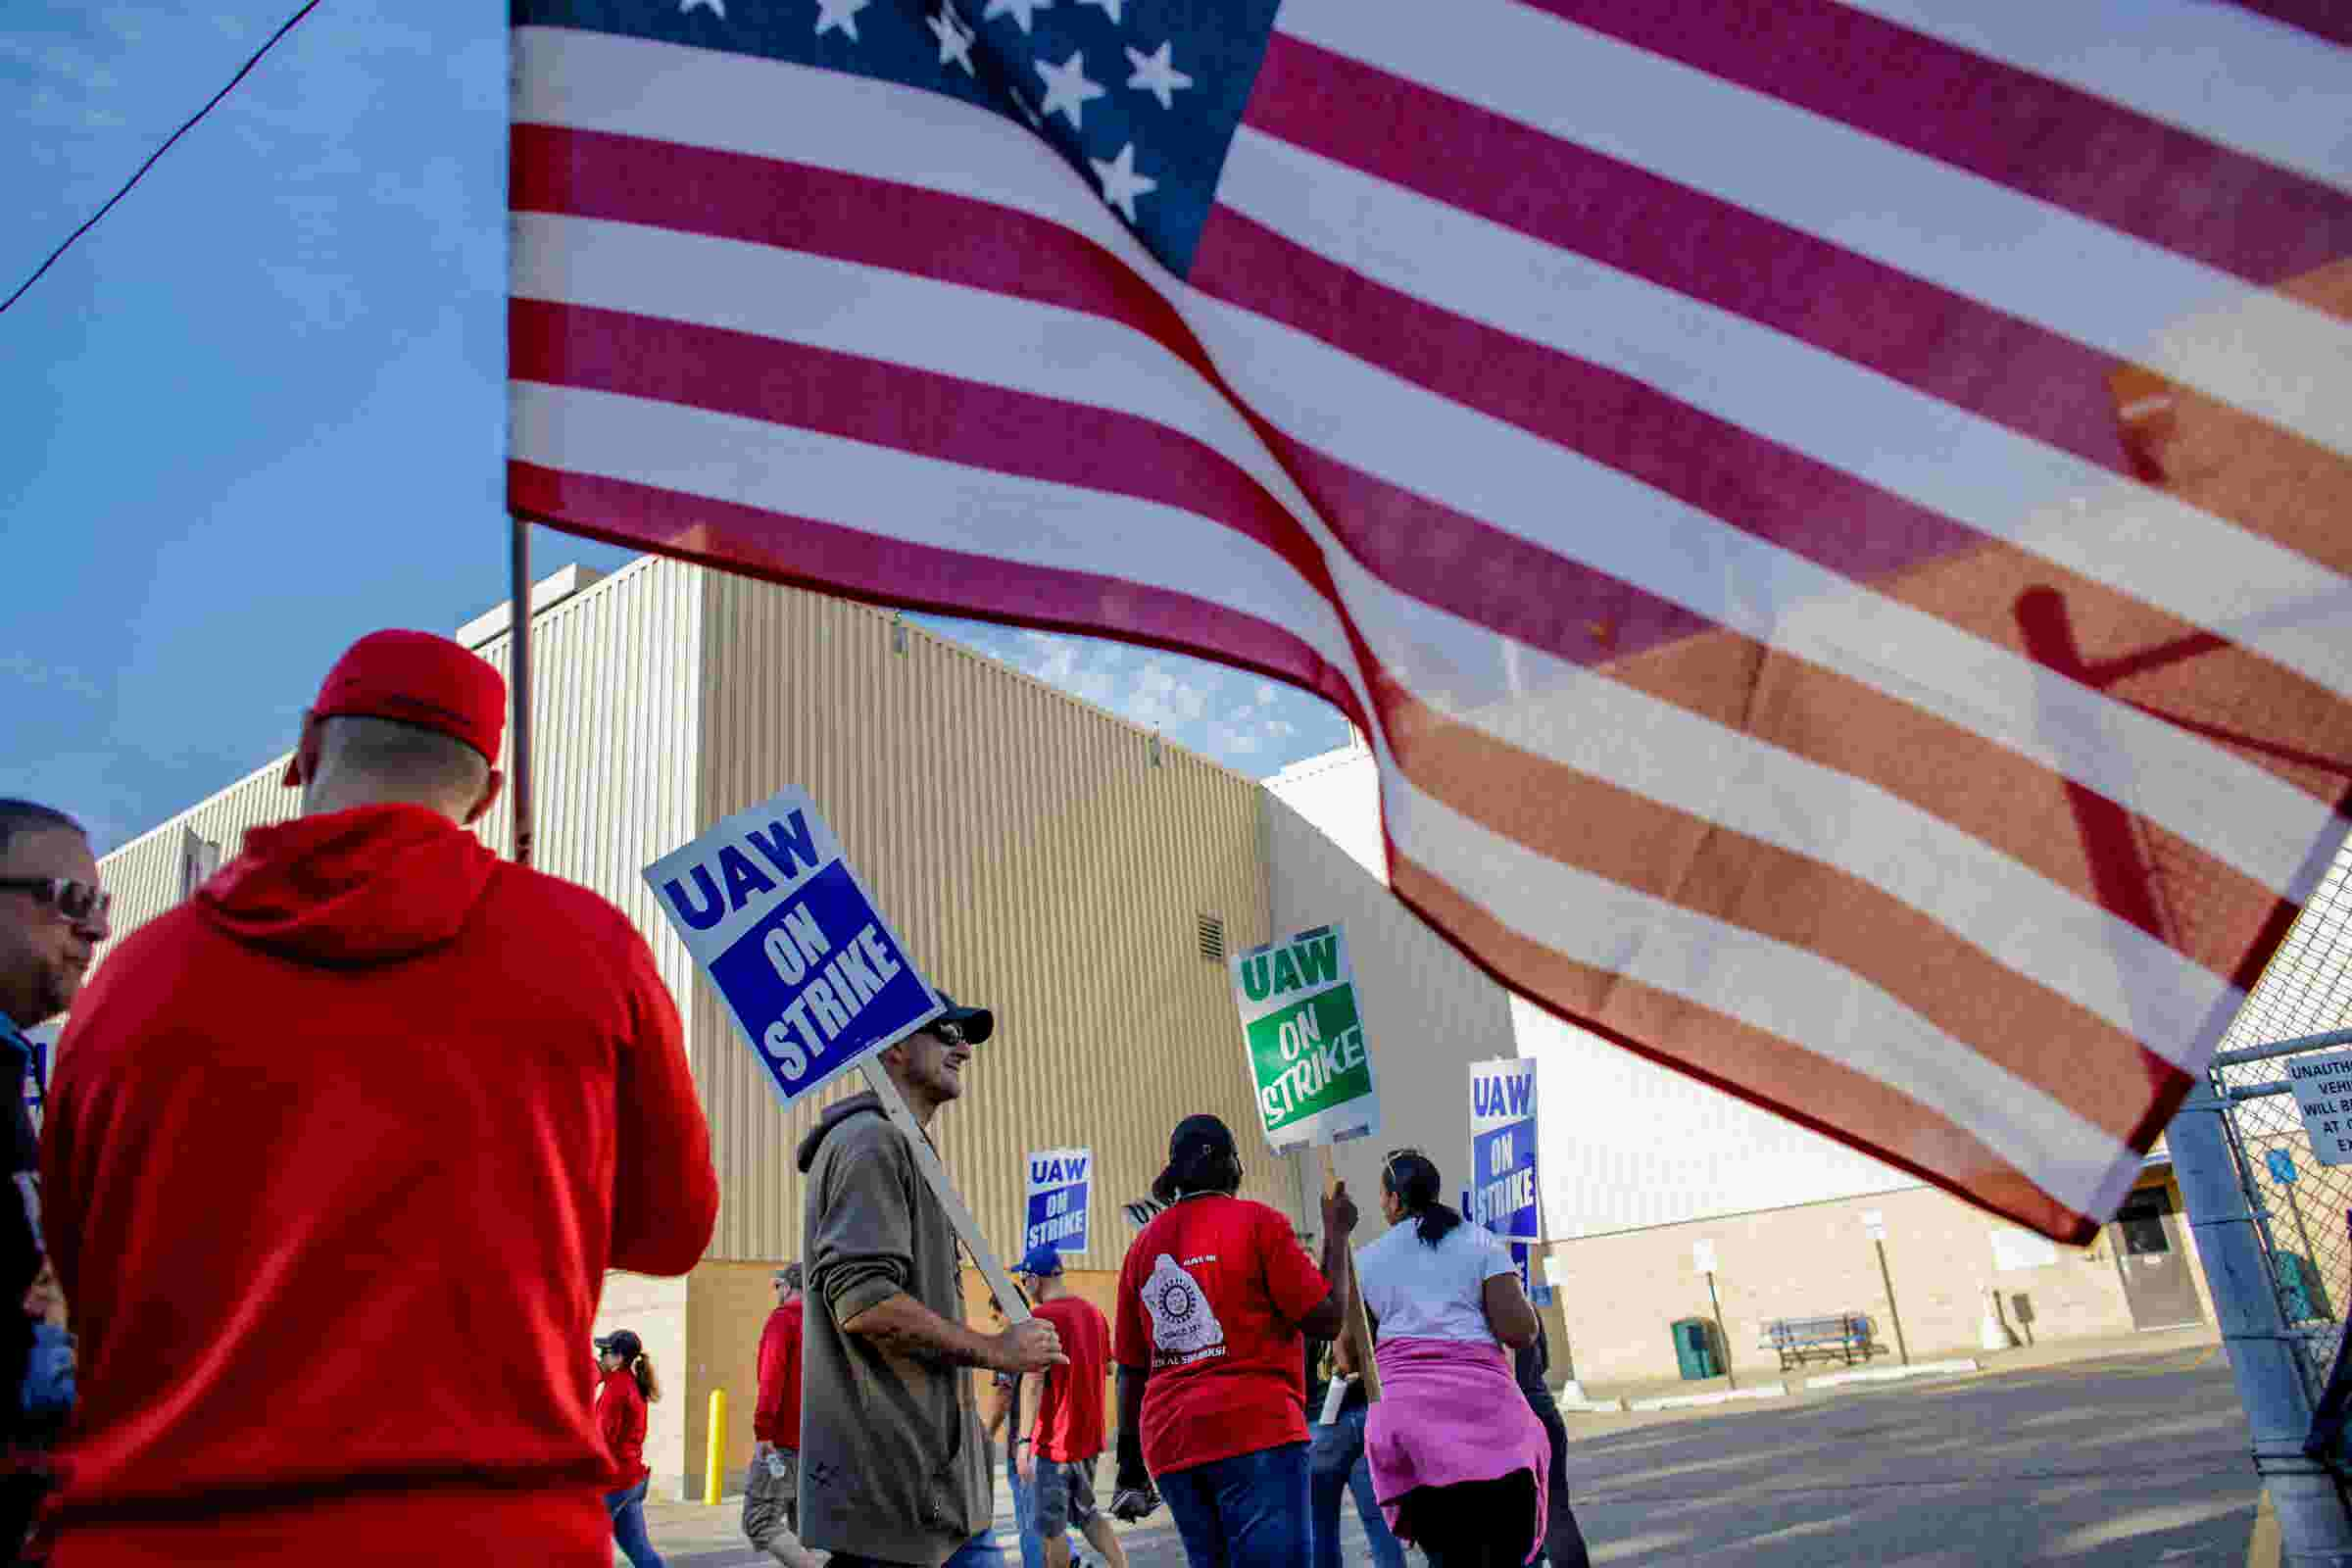 Report: Man punches UAW striker at Flint picket line